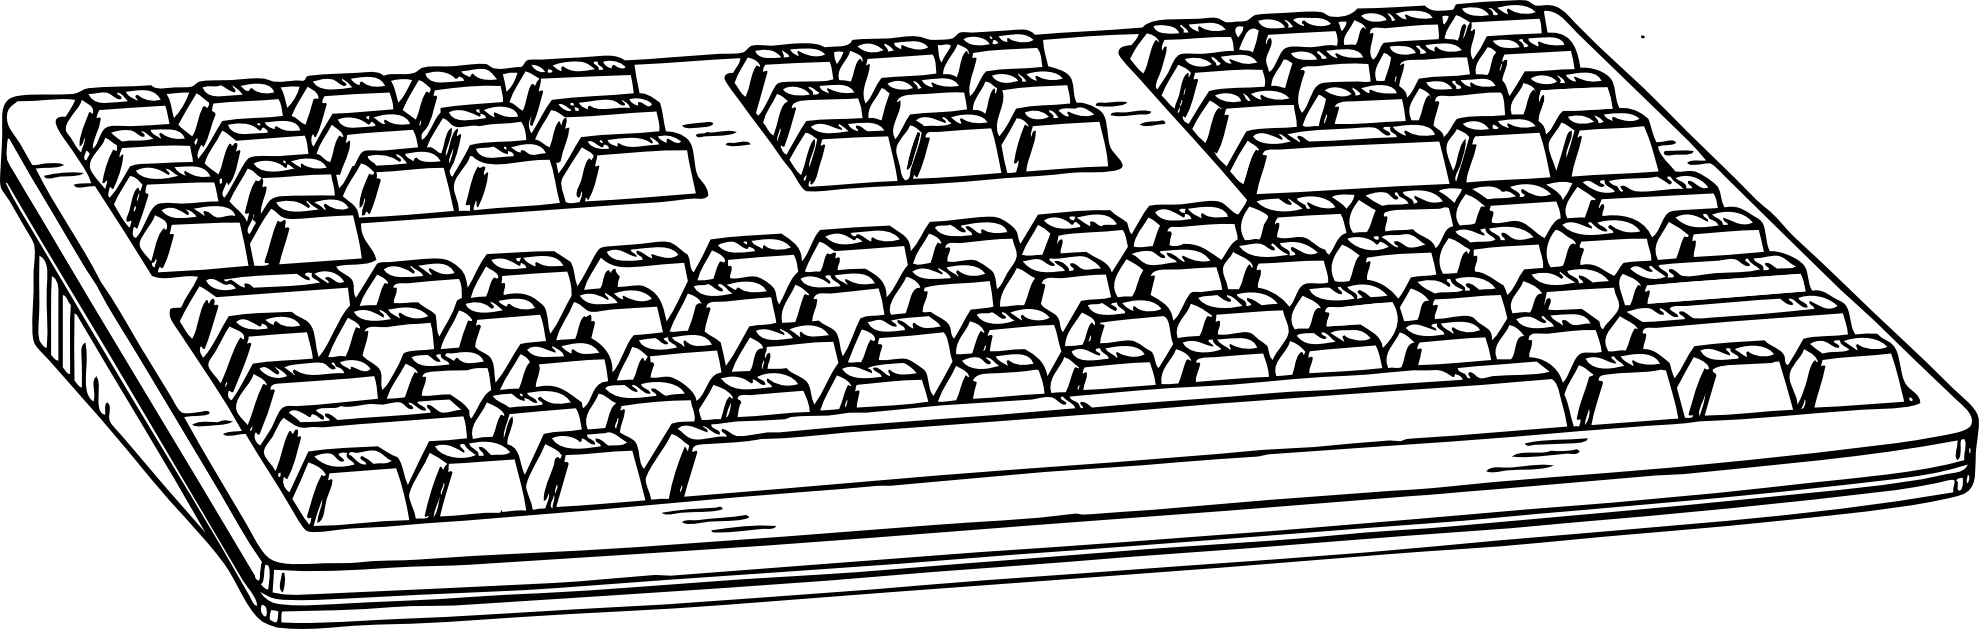 Piano Keyboard Clipart Free Clip art of Keyboard Clipart #7325.